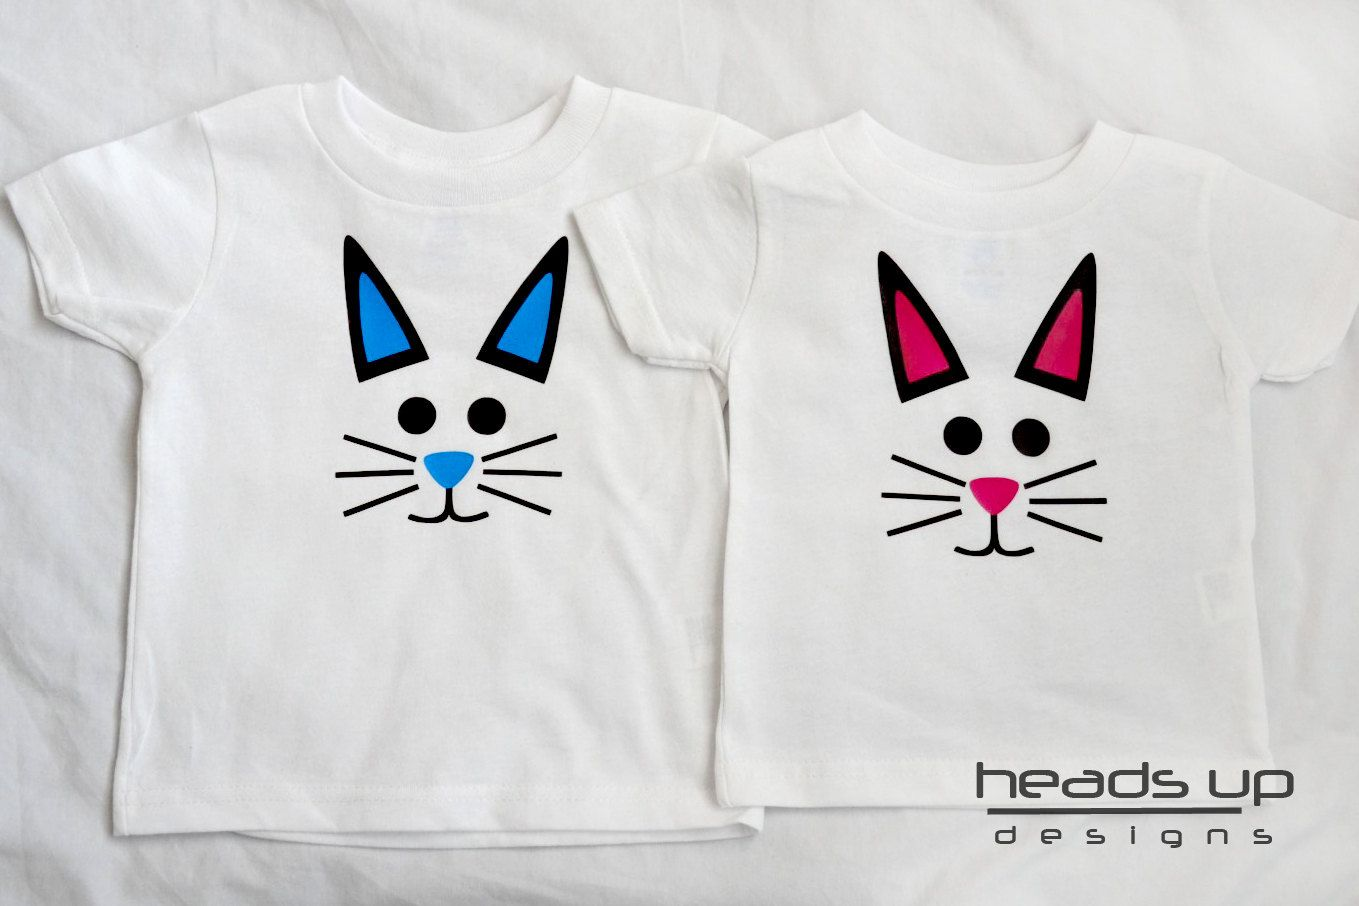 691b879c5 Matching Easter Shirts for Twins - Easter Bunny Onesies for Twin Boy and  Girl - Easter t-shirts for Siblings - Matching Easter t shirts -. $27.90,  via Etsy.